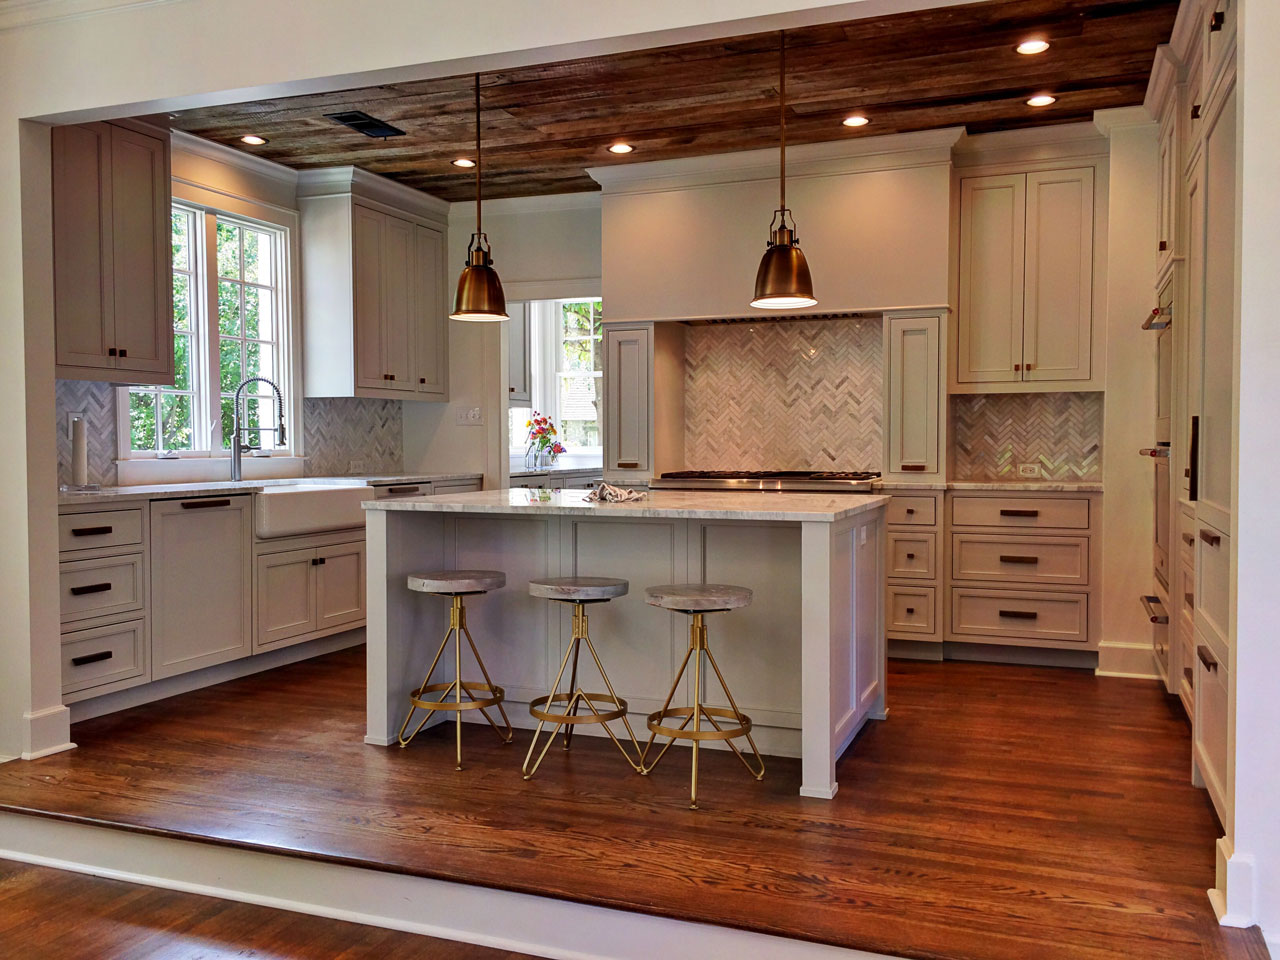 Premium grade, wooden kitchen cabinetry